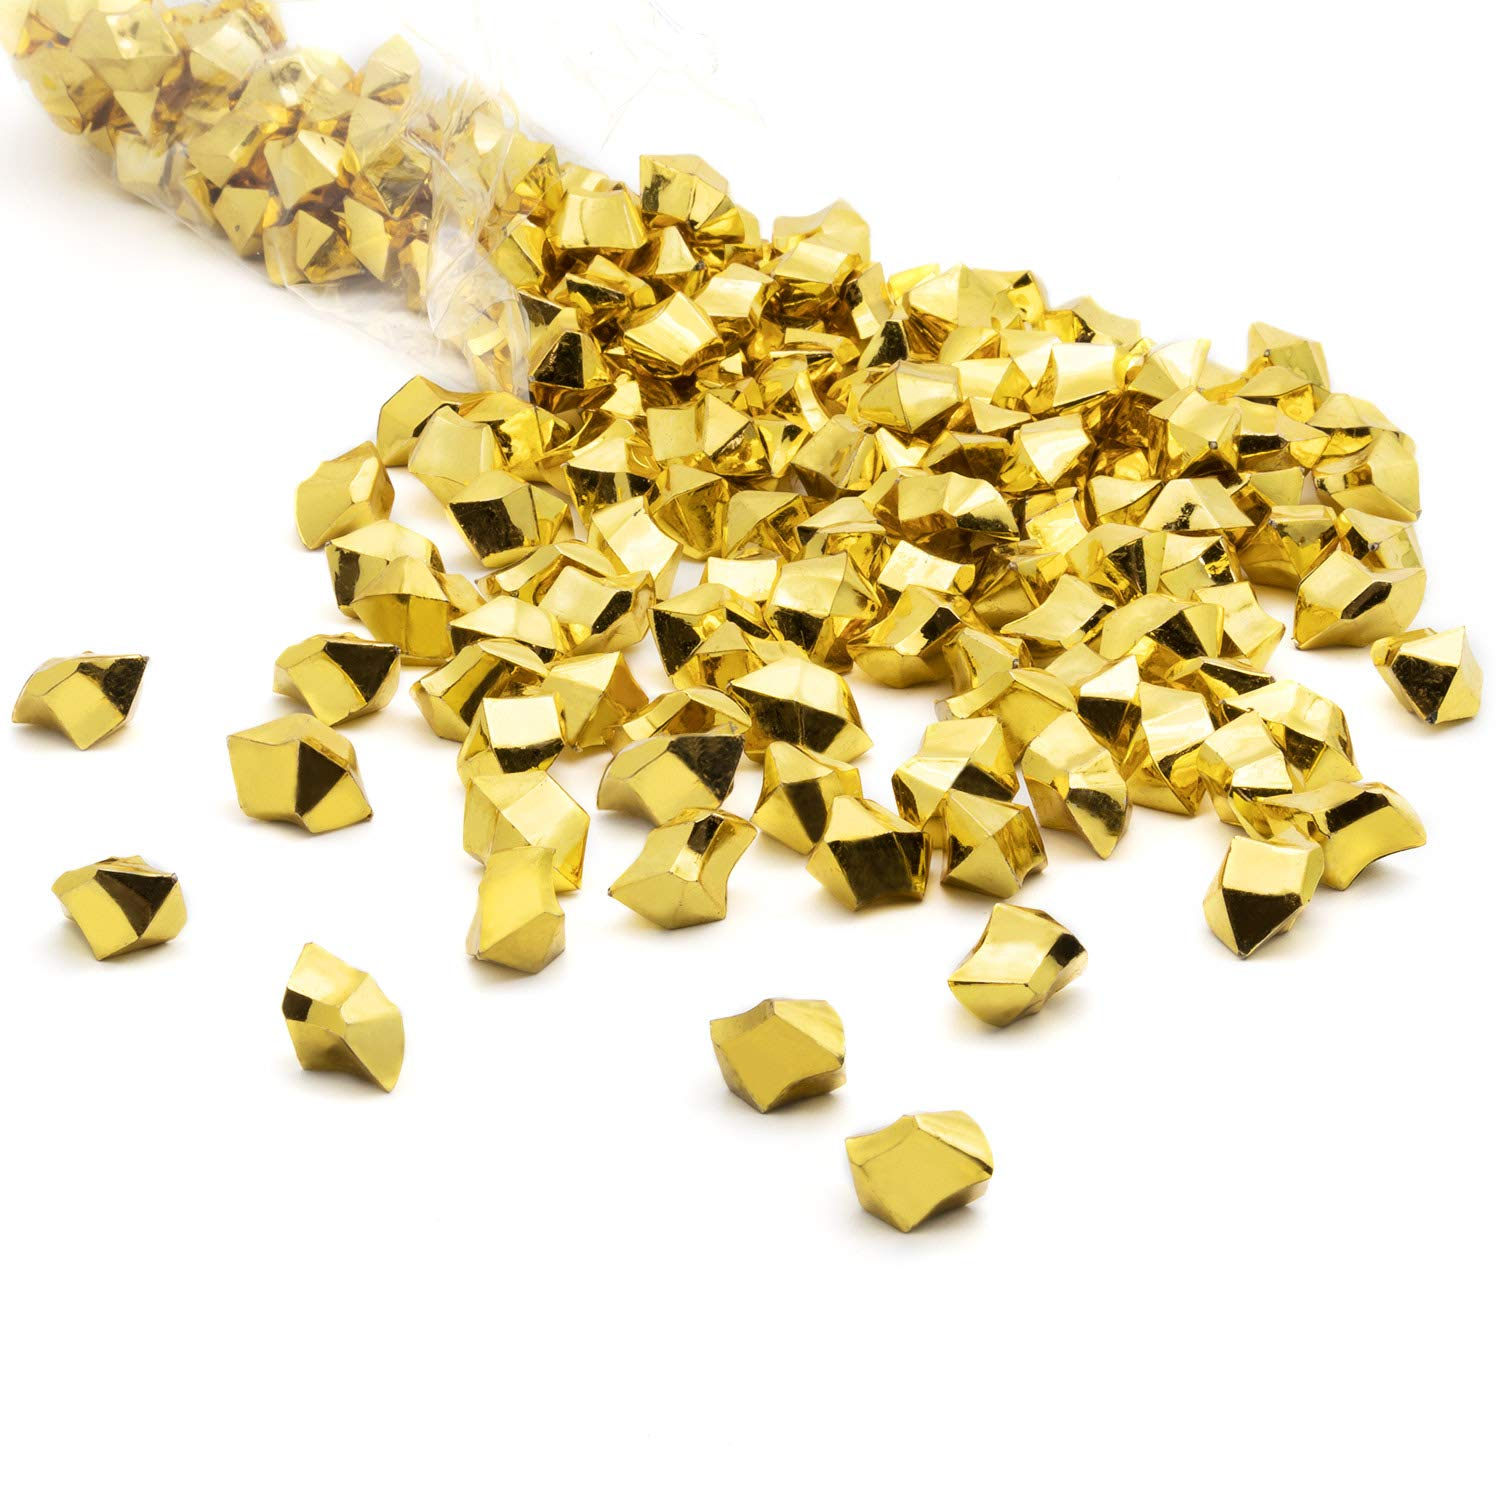 Acrylic Gems Ice Crystal Rocks for Vase Fillers, Party Table Scatter, Wedding, Photography, Party Decoration, Crafts by Royal Imports, 3 LBS (Approx 580-600 gems) - Gold